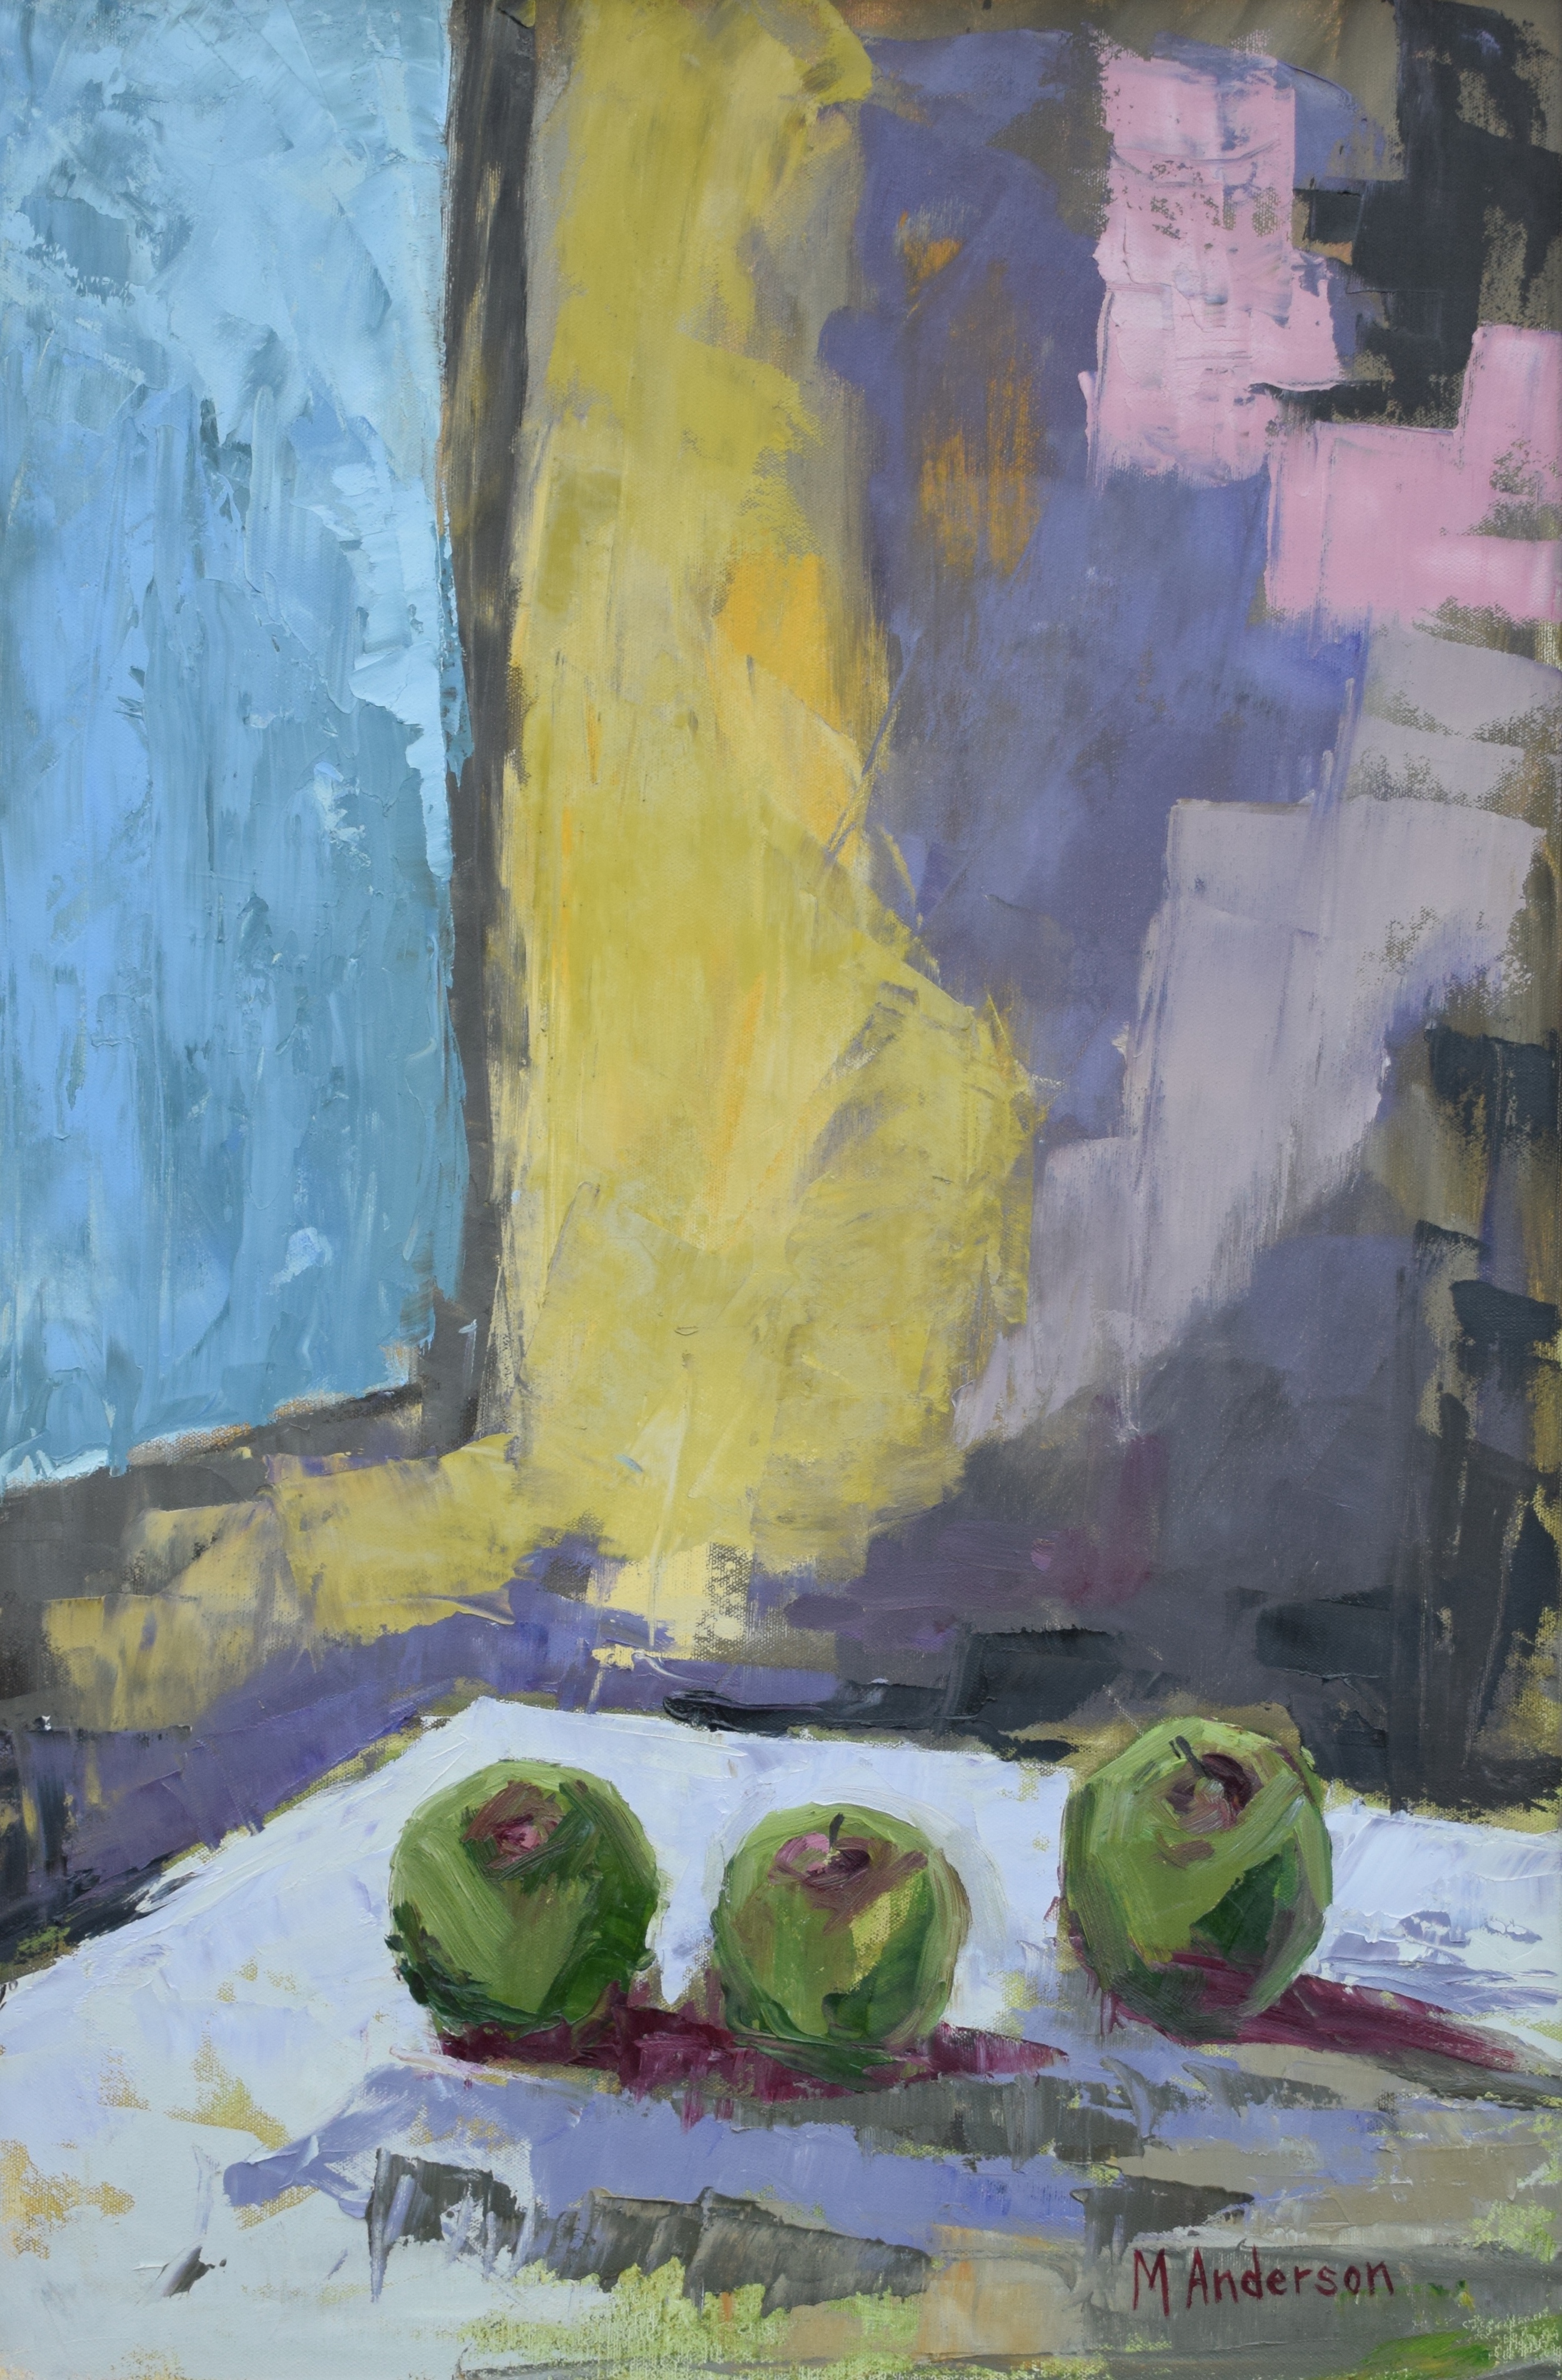 Green Apples (30x20 Canvas) - Sold